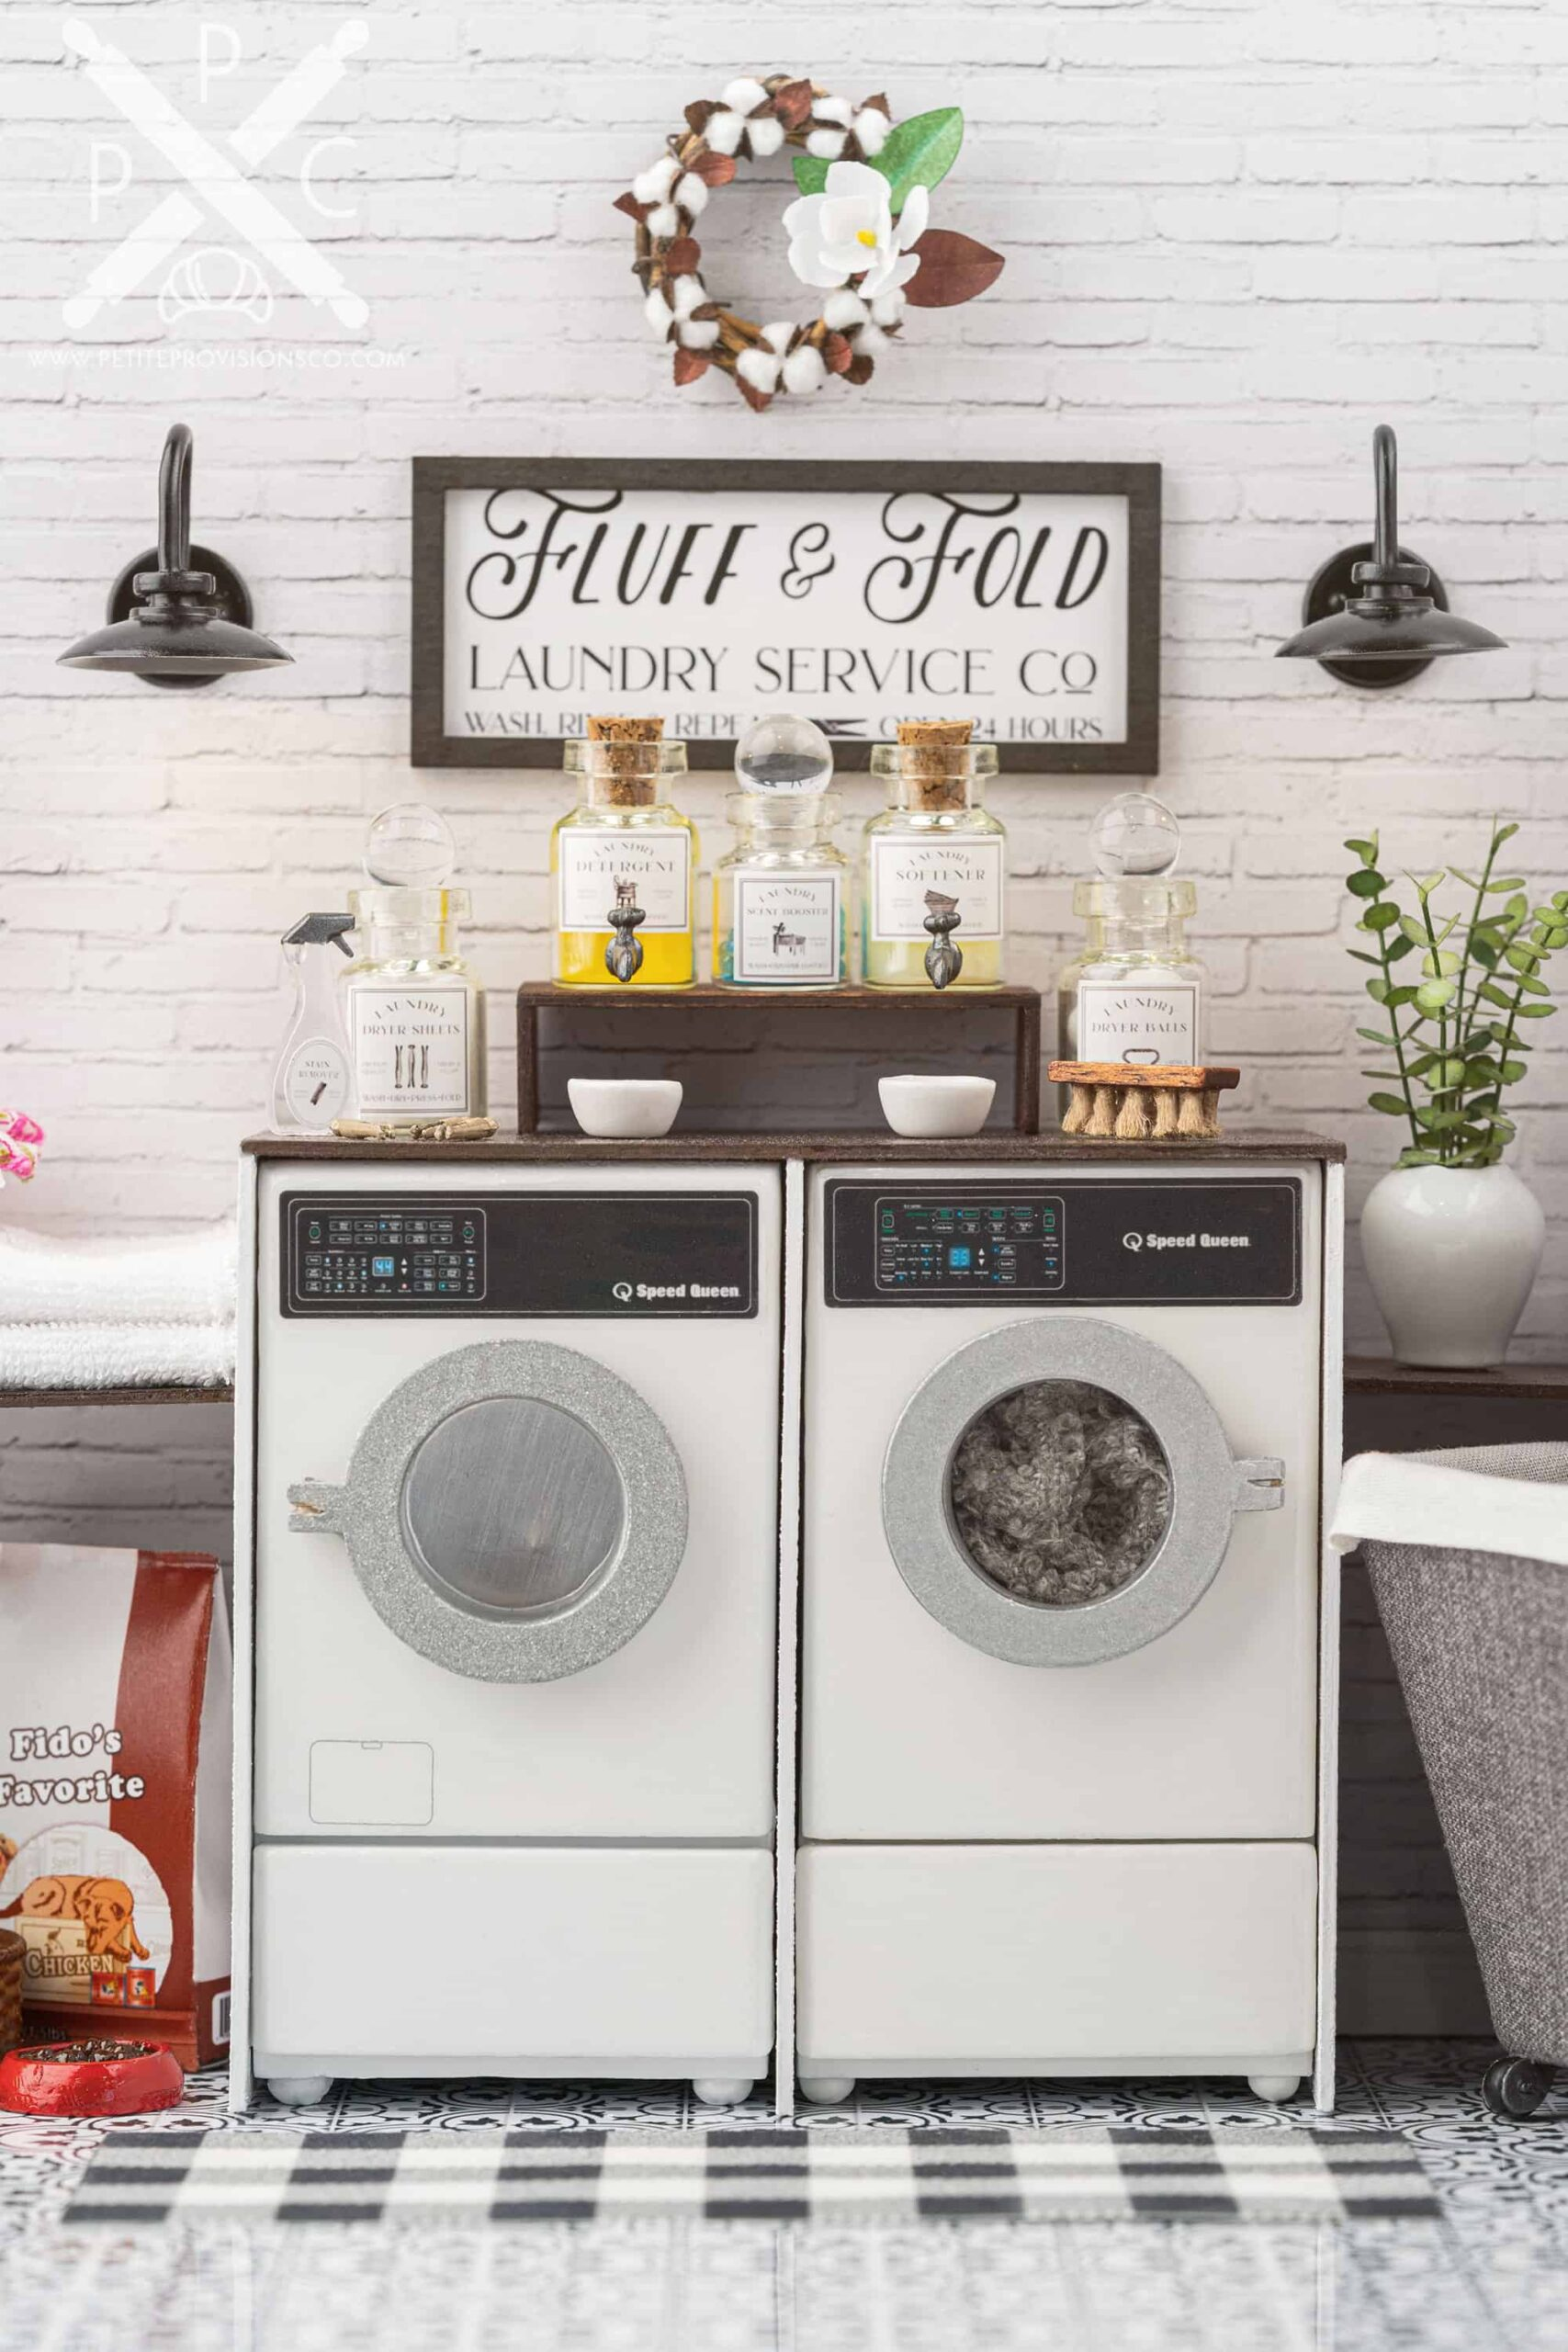 A washer and dryer set in a one-inch scale laundry room scene with farmhouse decor